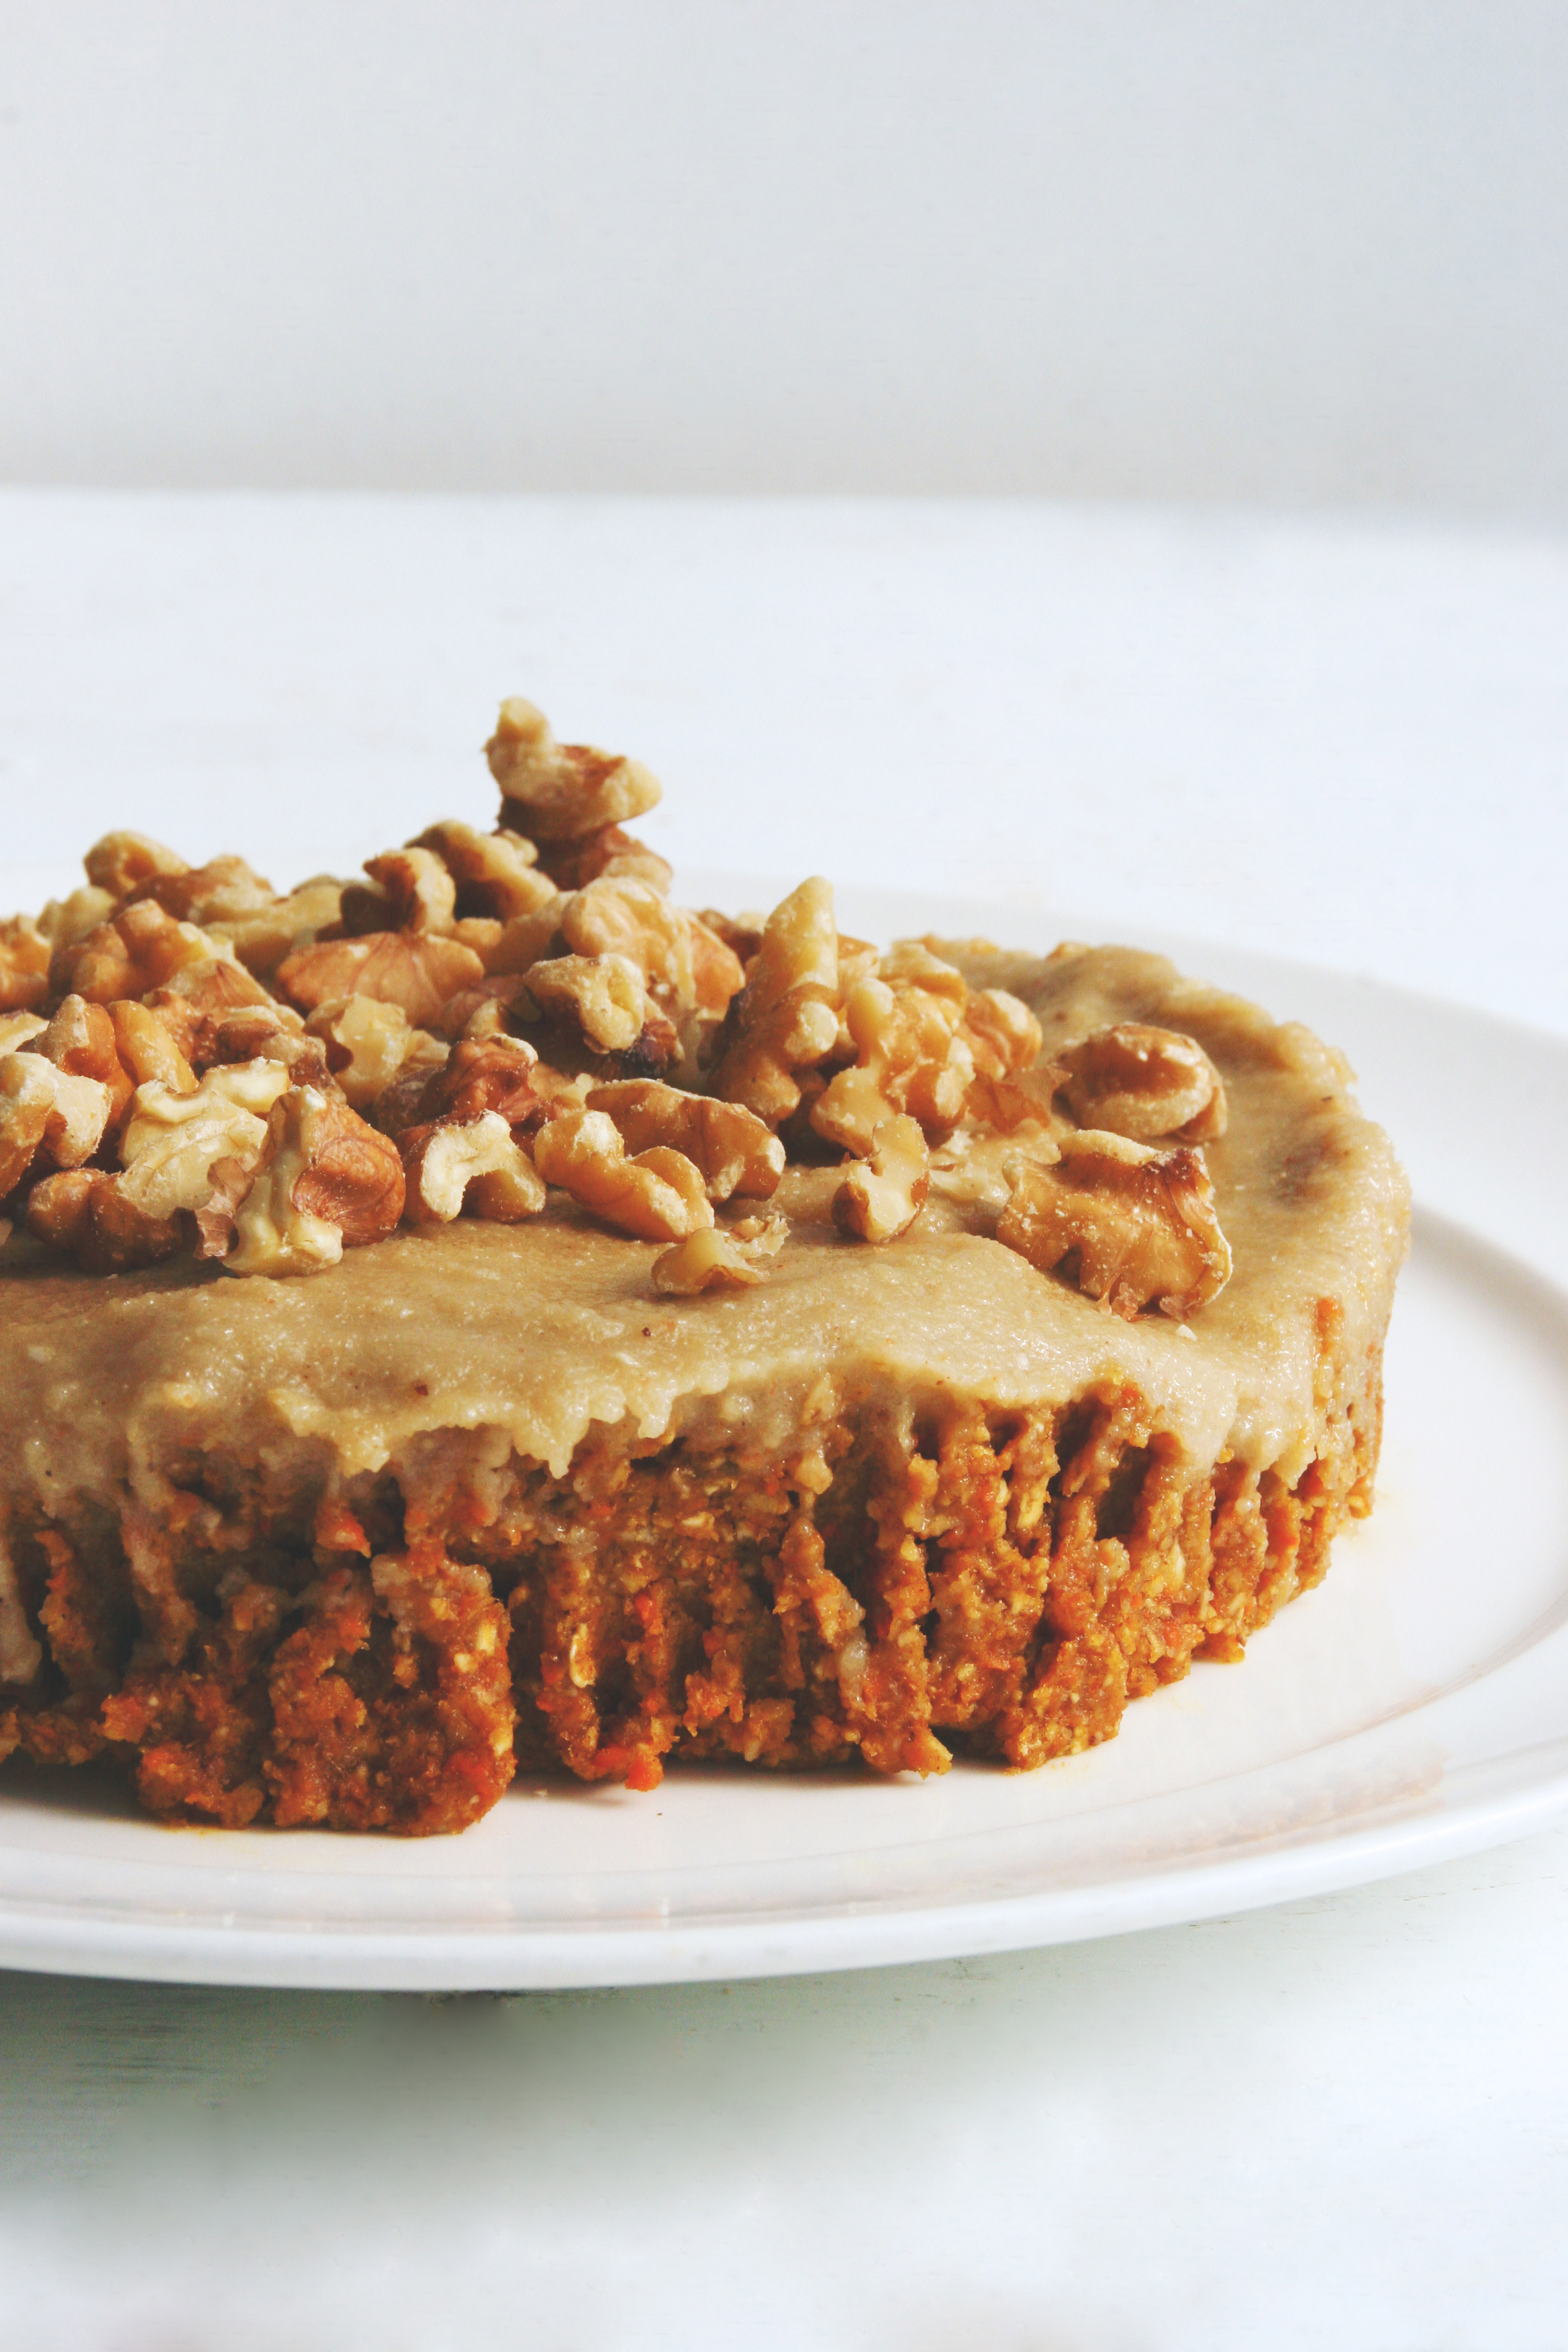 raw vegan carrot cake with cashew cream frosting // raw, vegan, gluten-free, refined sugar-free